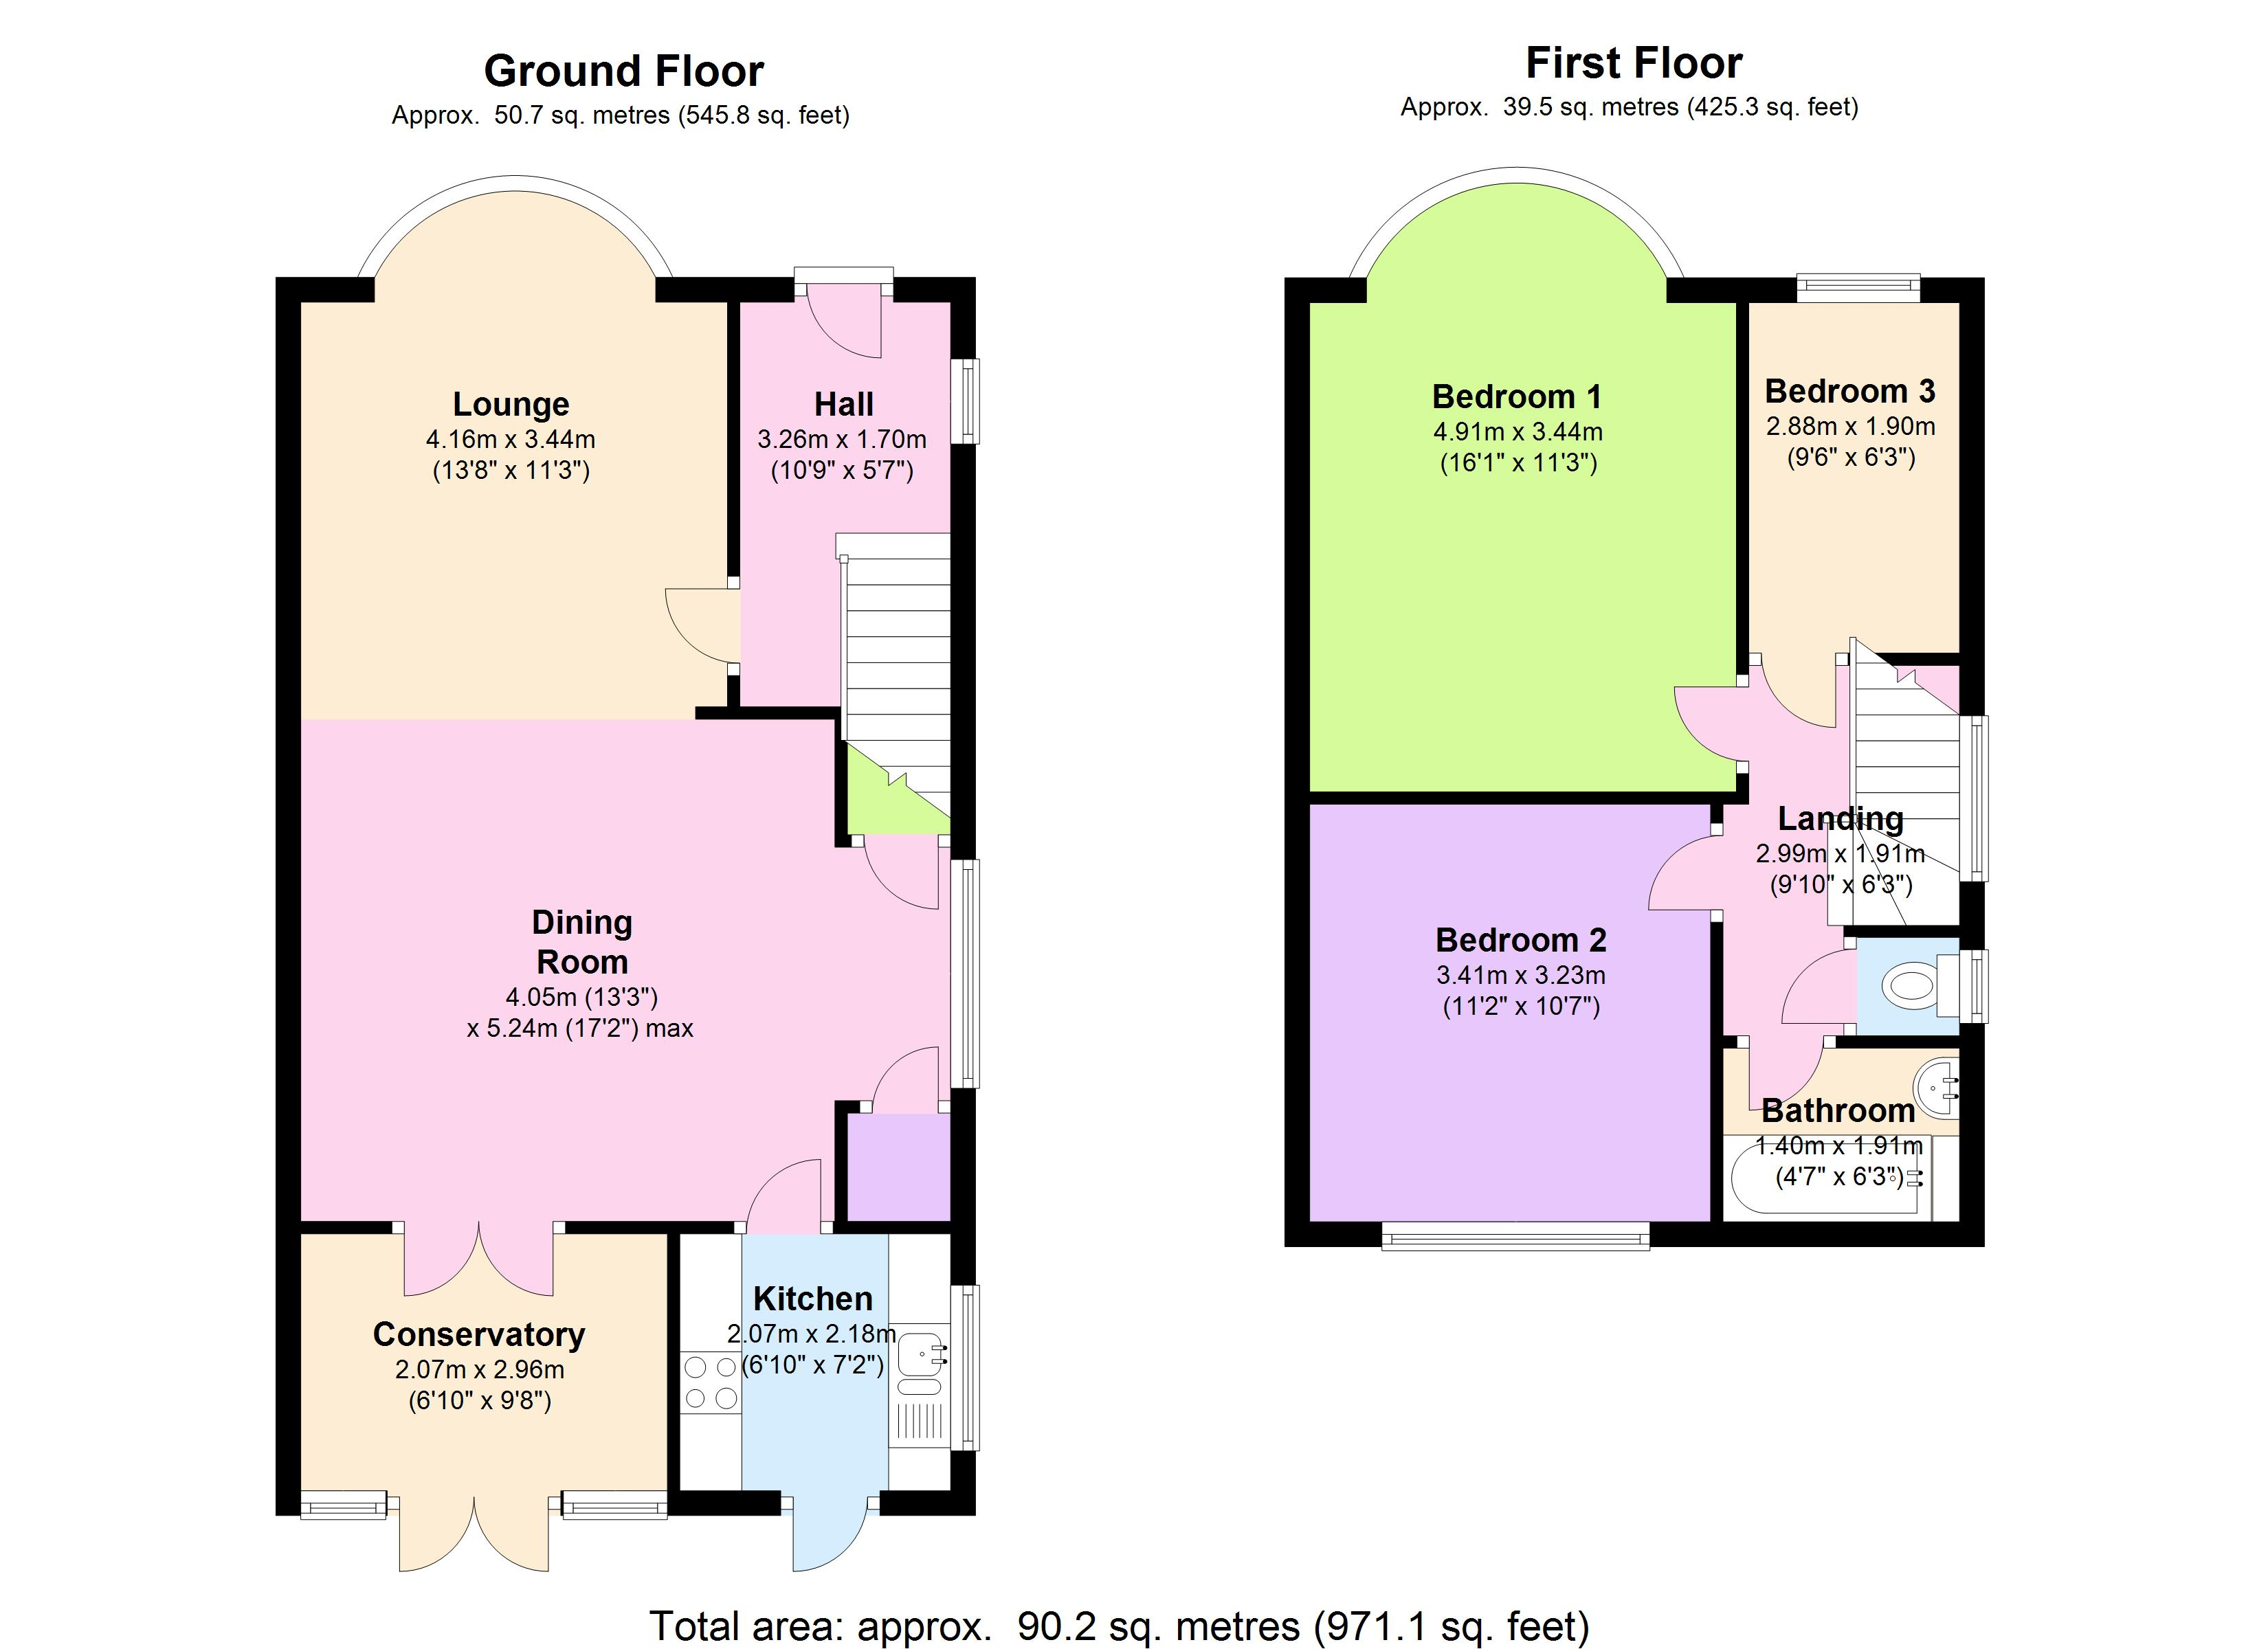 13 Foresters Drive, London, E17 3PG floor plan